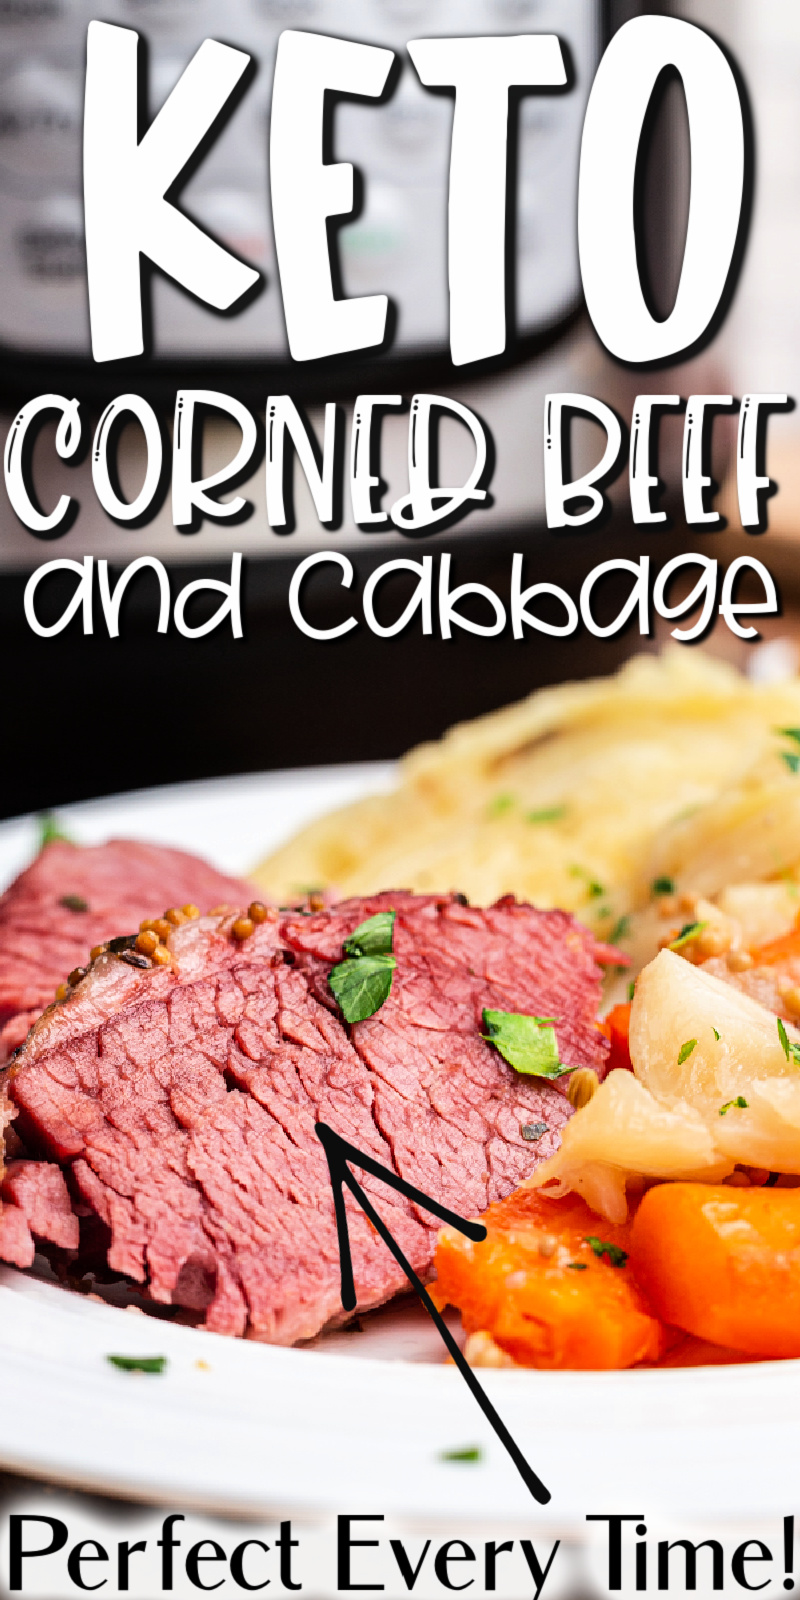 Keto Instant Pot Corned Beef and Cabbage - Whether you're making corned beef for St. Patrick's day or just a Sunday dinner for the family, this easy keto Instant Pot corned beef and cabbage recipe is sure to become a favorite. #lowcarb #keto #glutenfree #instantpot #beef #cornedbeef #cabbage #stpatricksday #easy #recipe #beef #roast